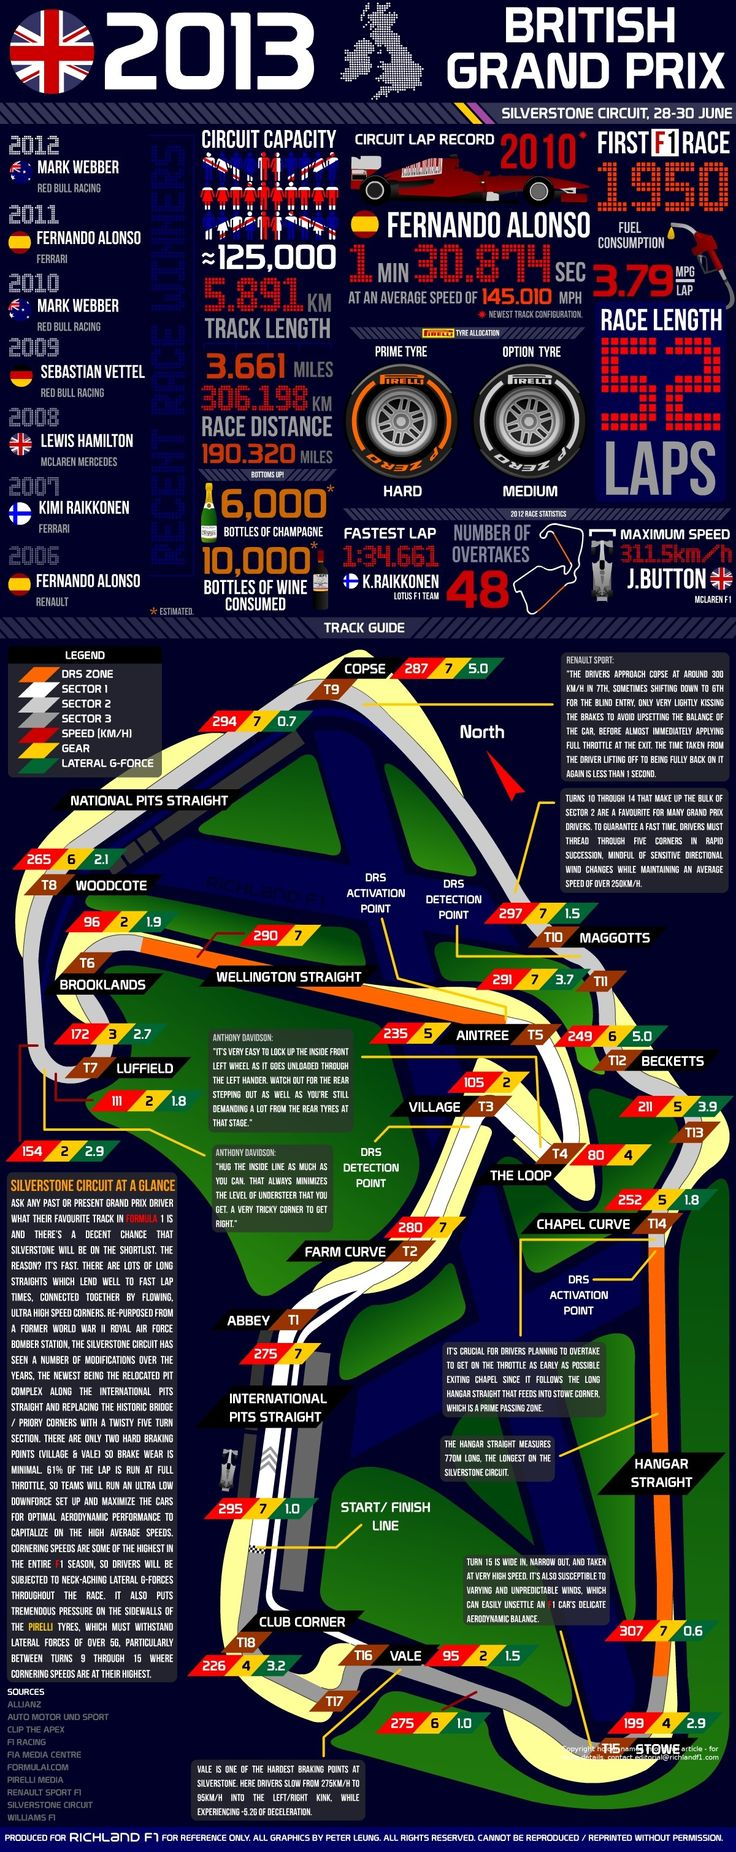 2013 British Grand Prix- Facts and Figures #F1